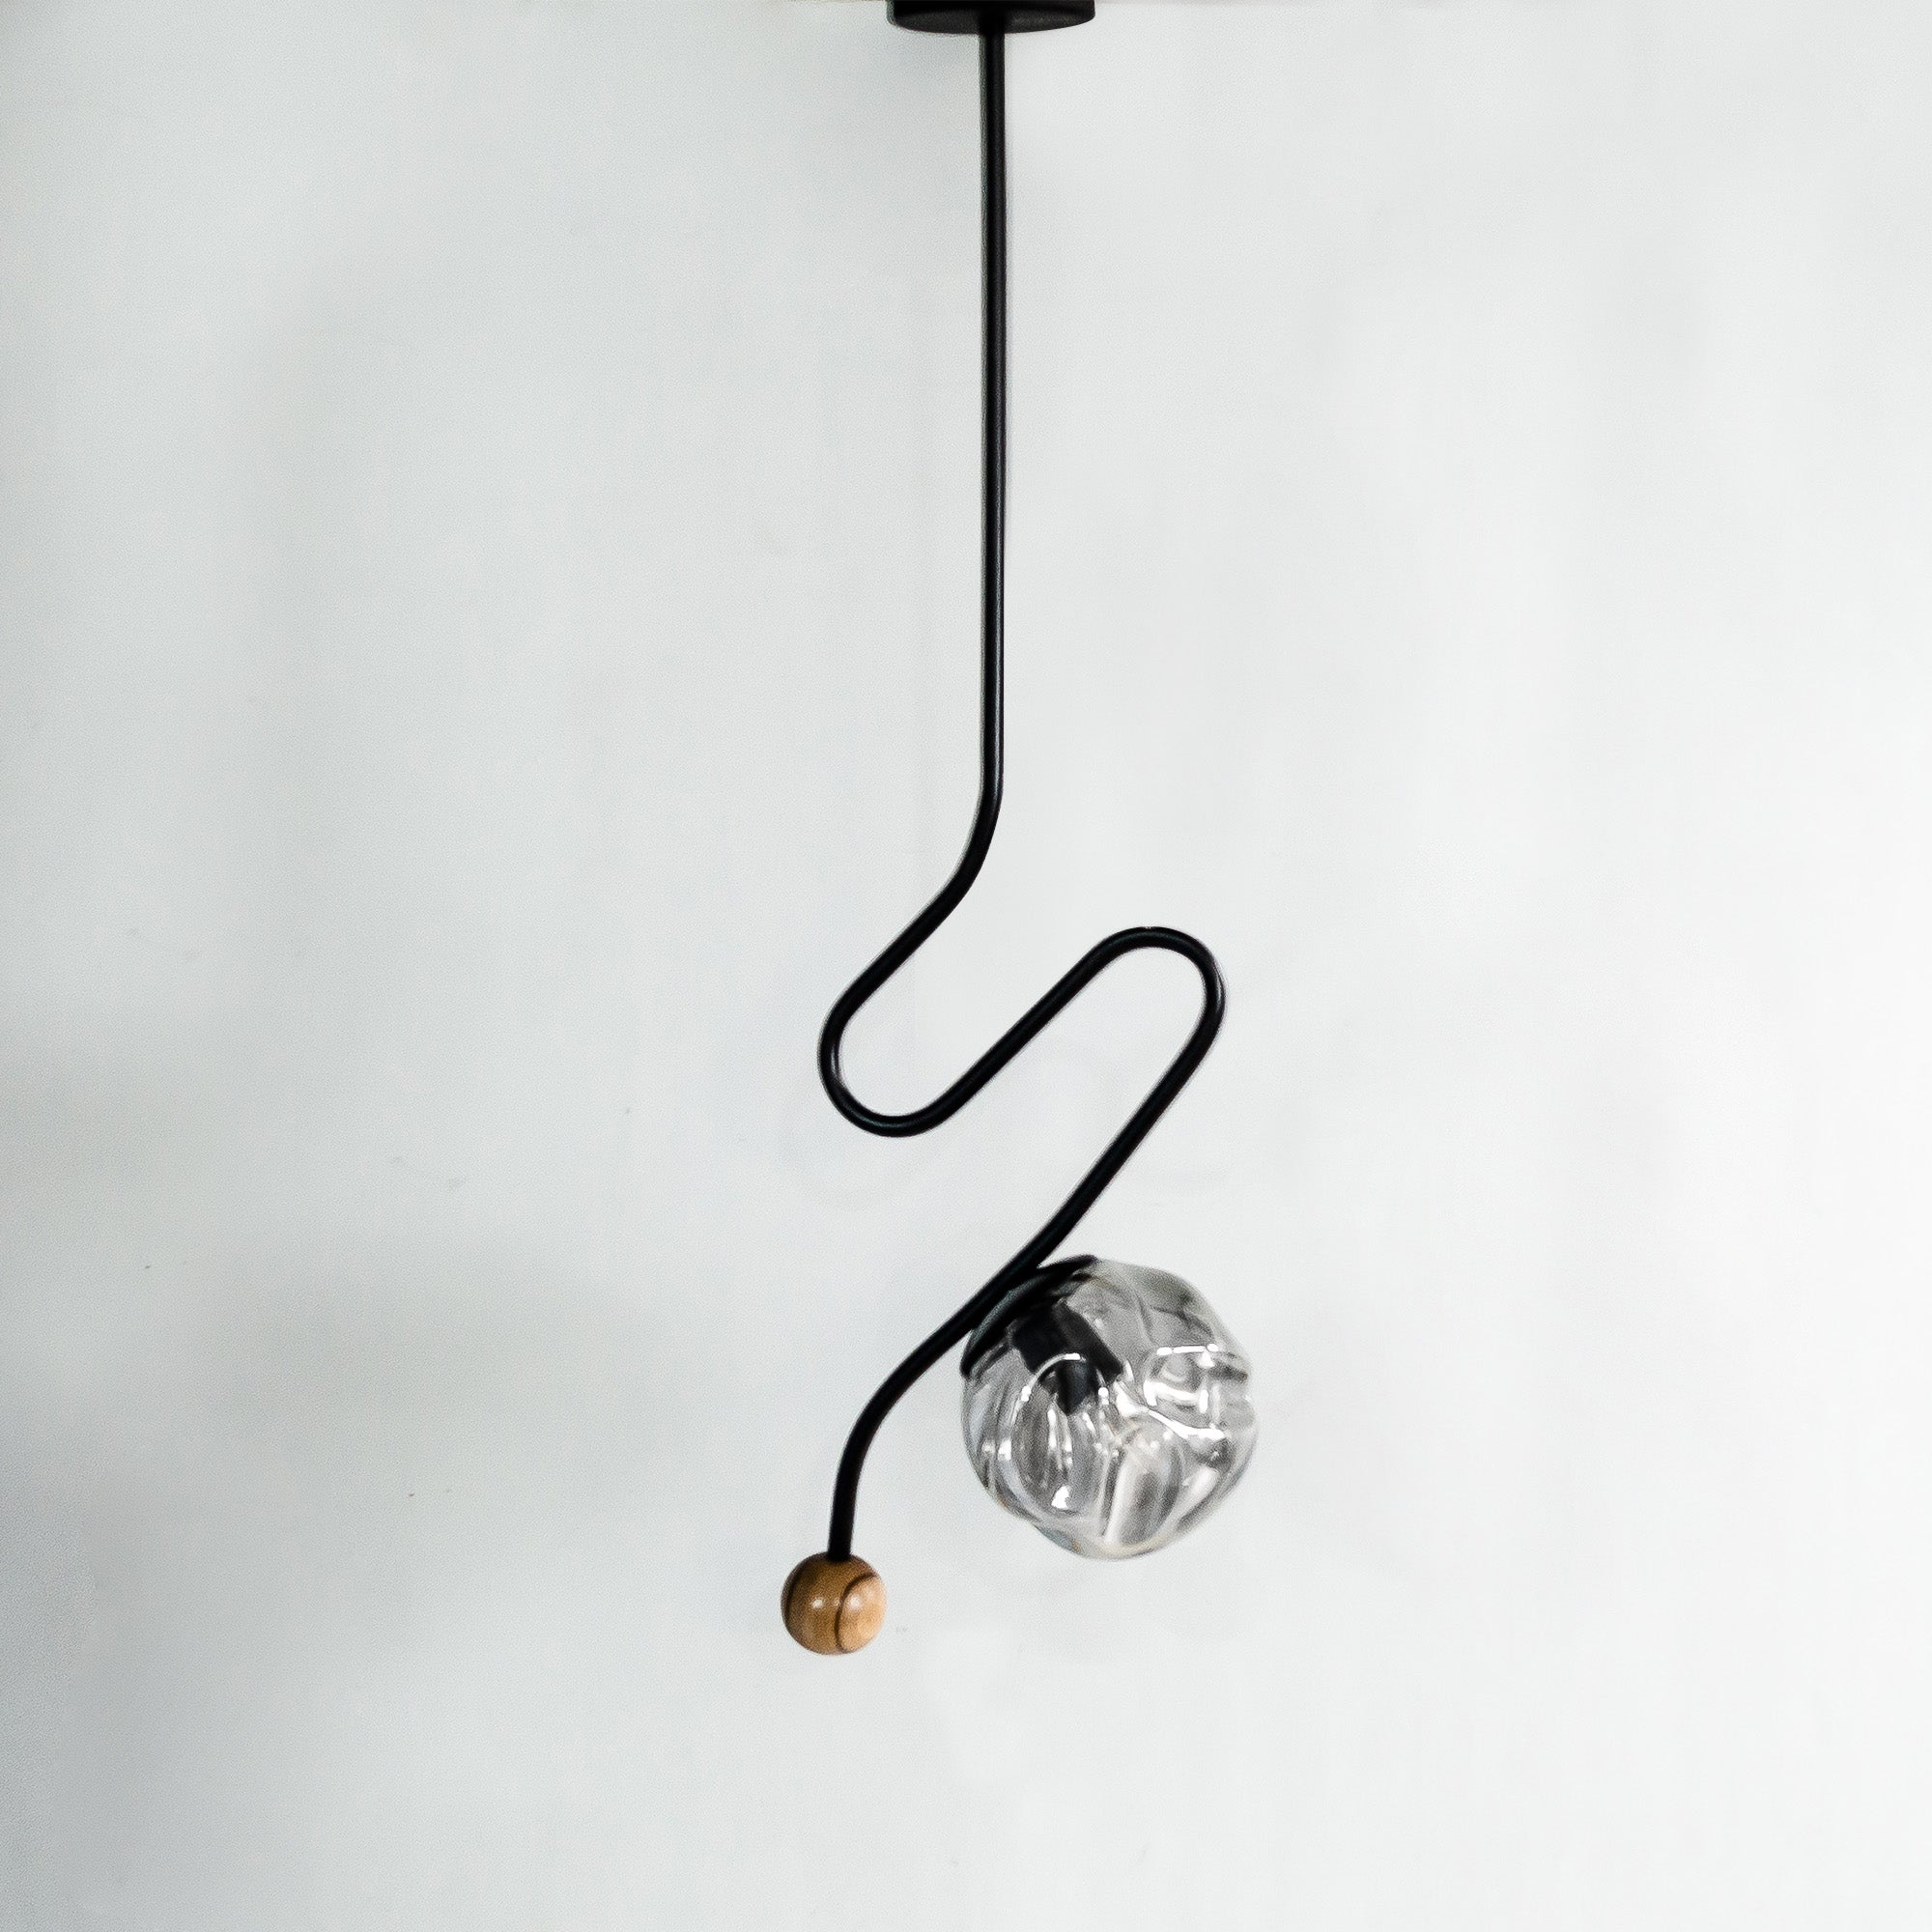 Wave Black Hanging Light - The Black Steel